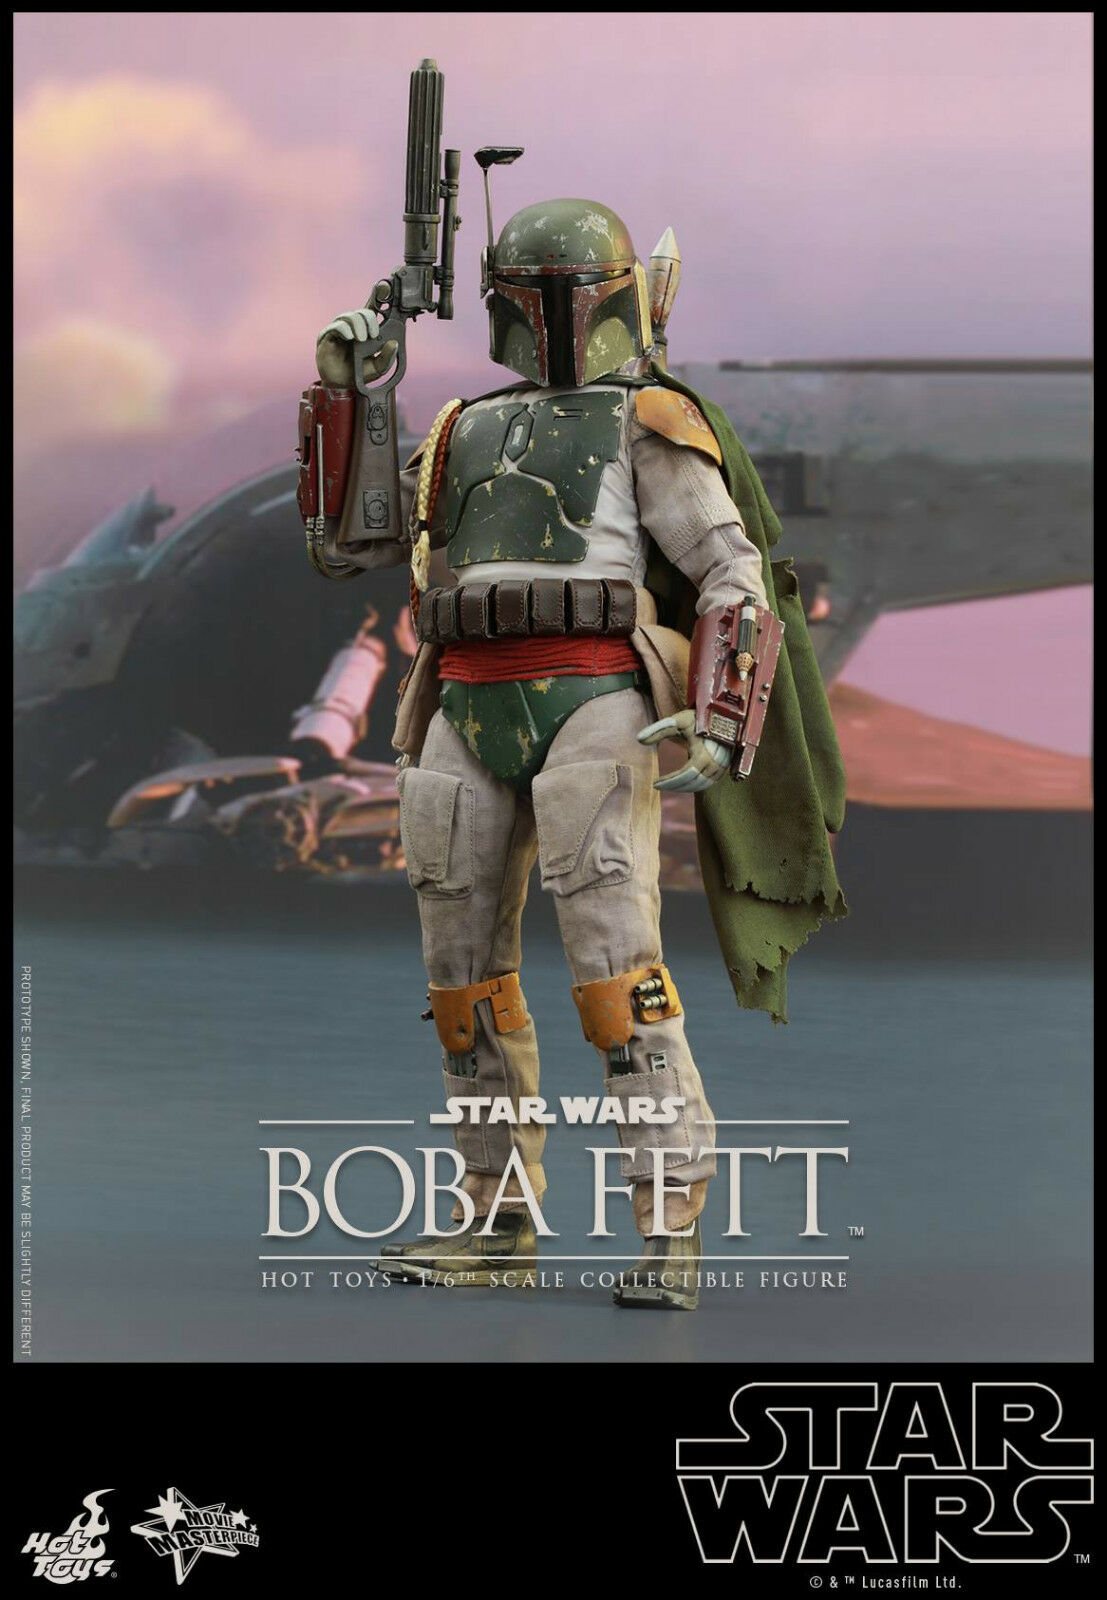 1 6 Star Wars  Episode VI Boba Fett Movie Masterpiece by Hot Toys 902491  sortie de marque